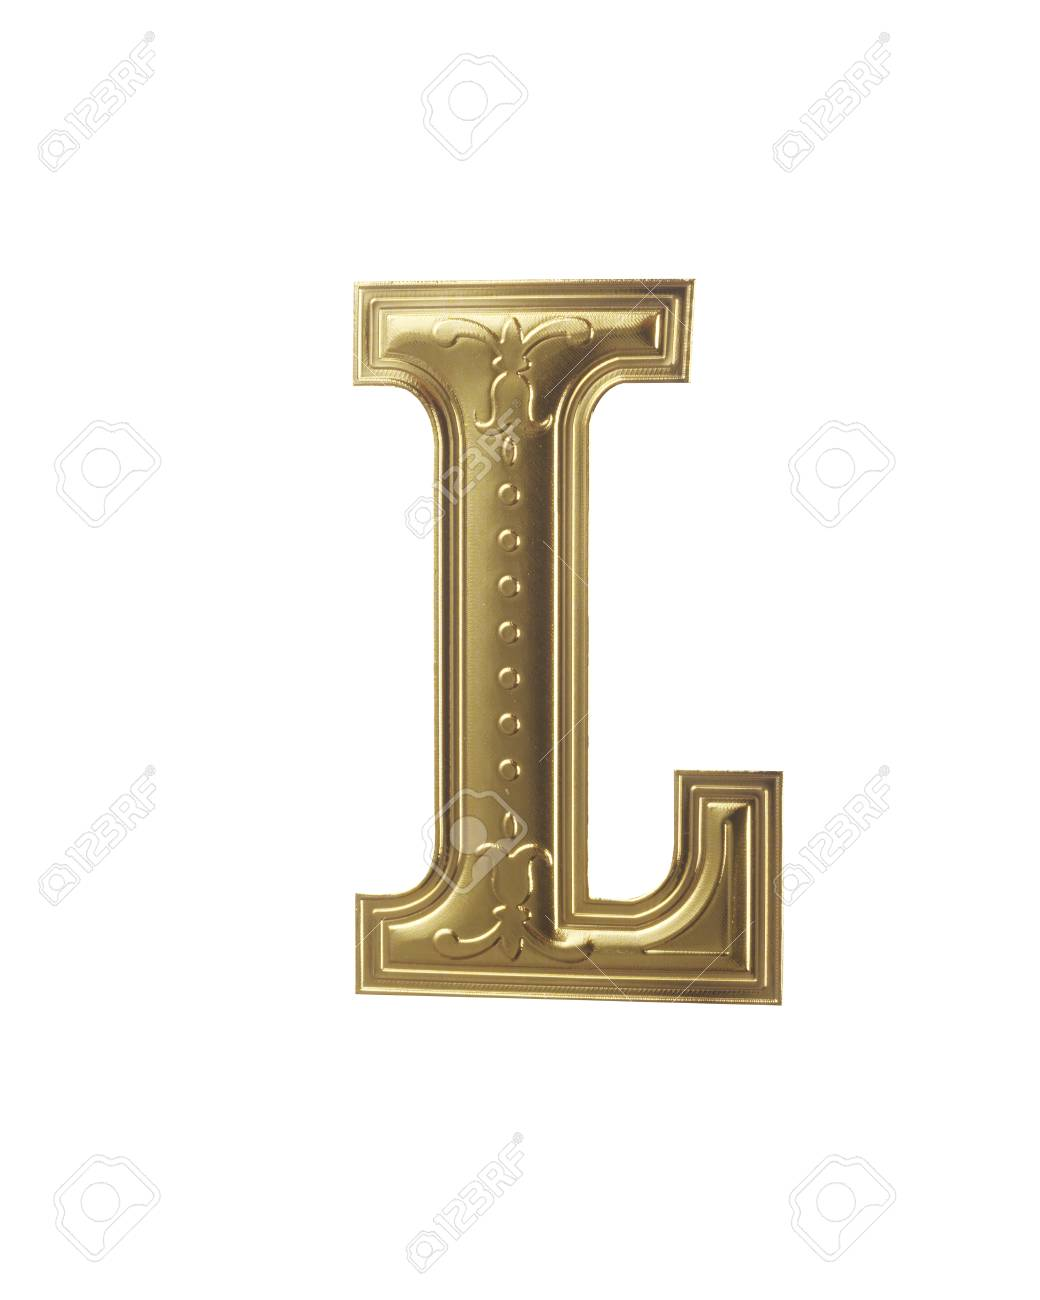 stock image of gold color alphabet with clipping path - 117804134